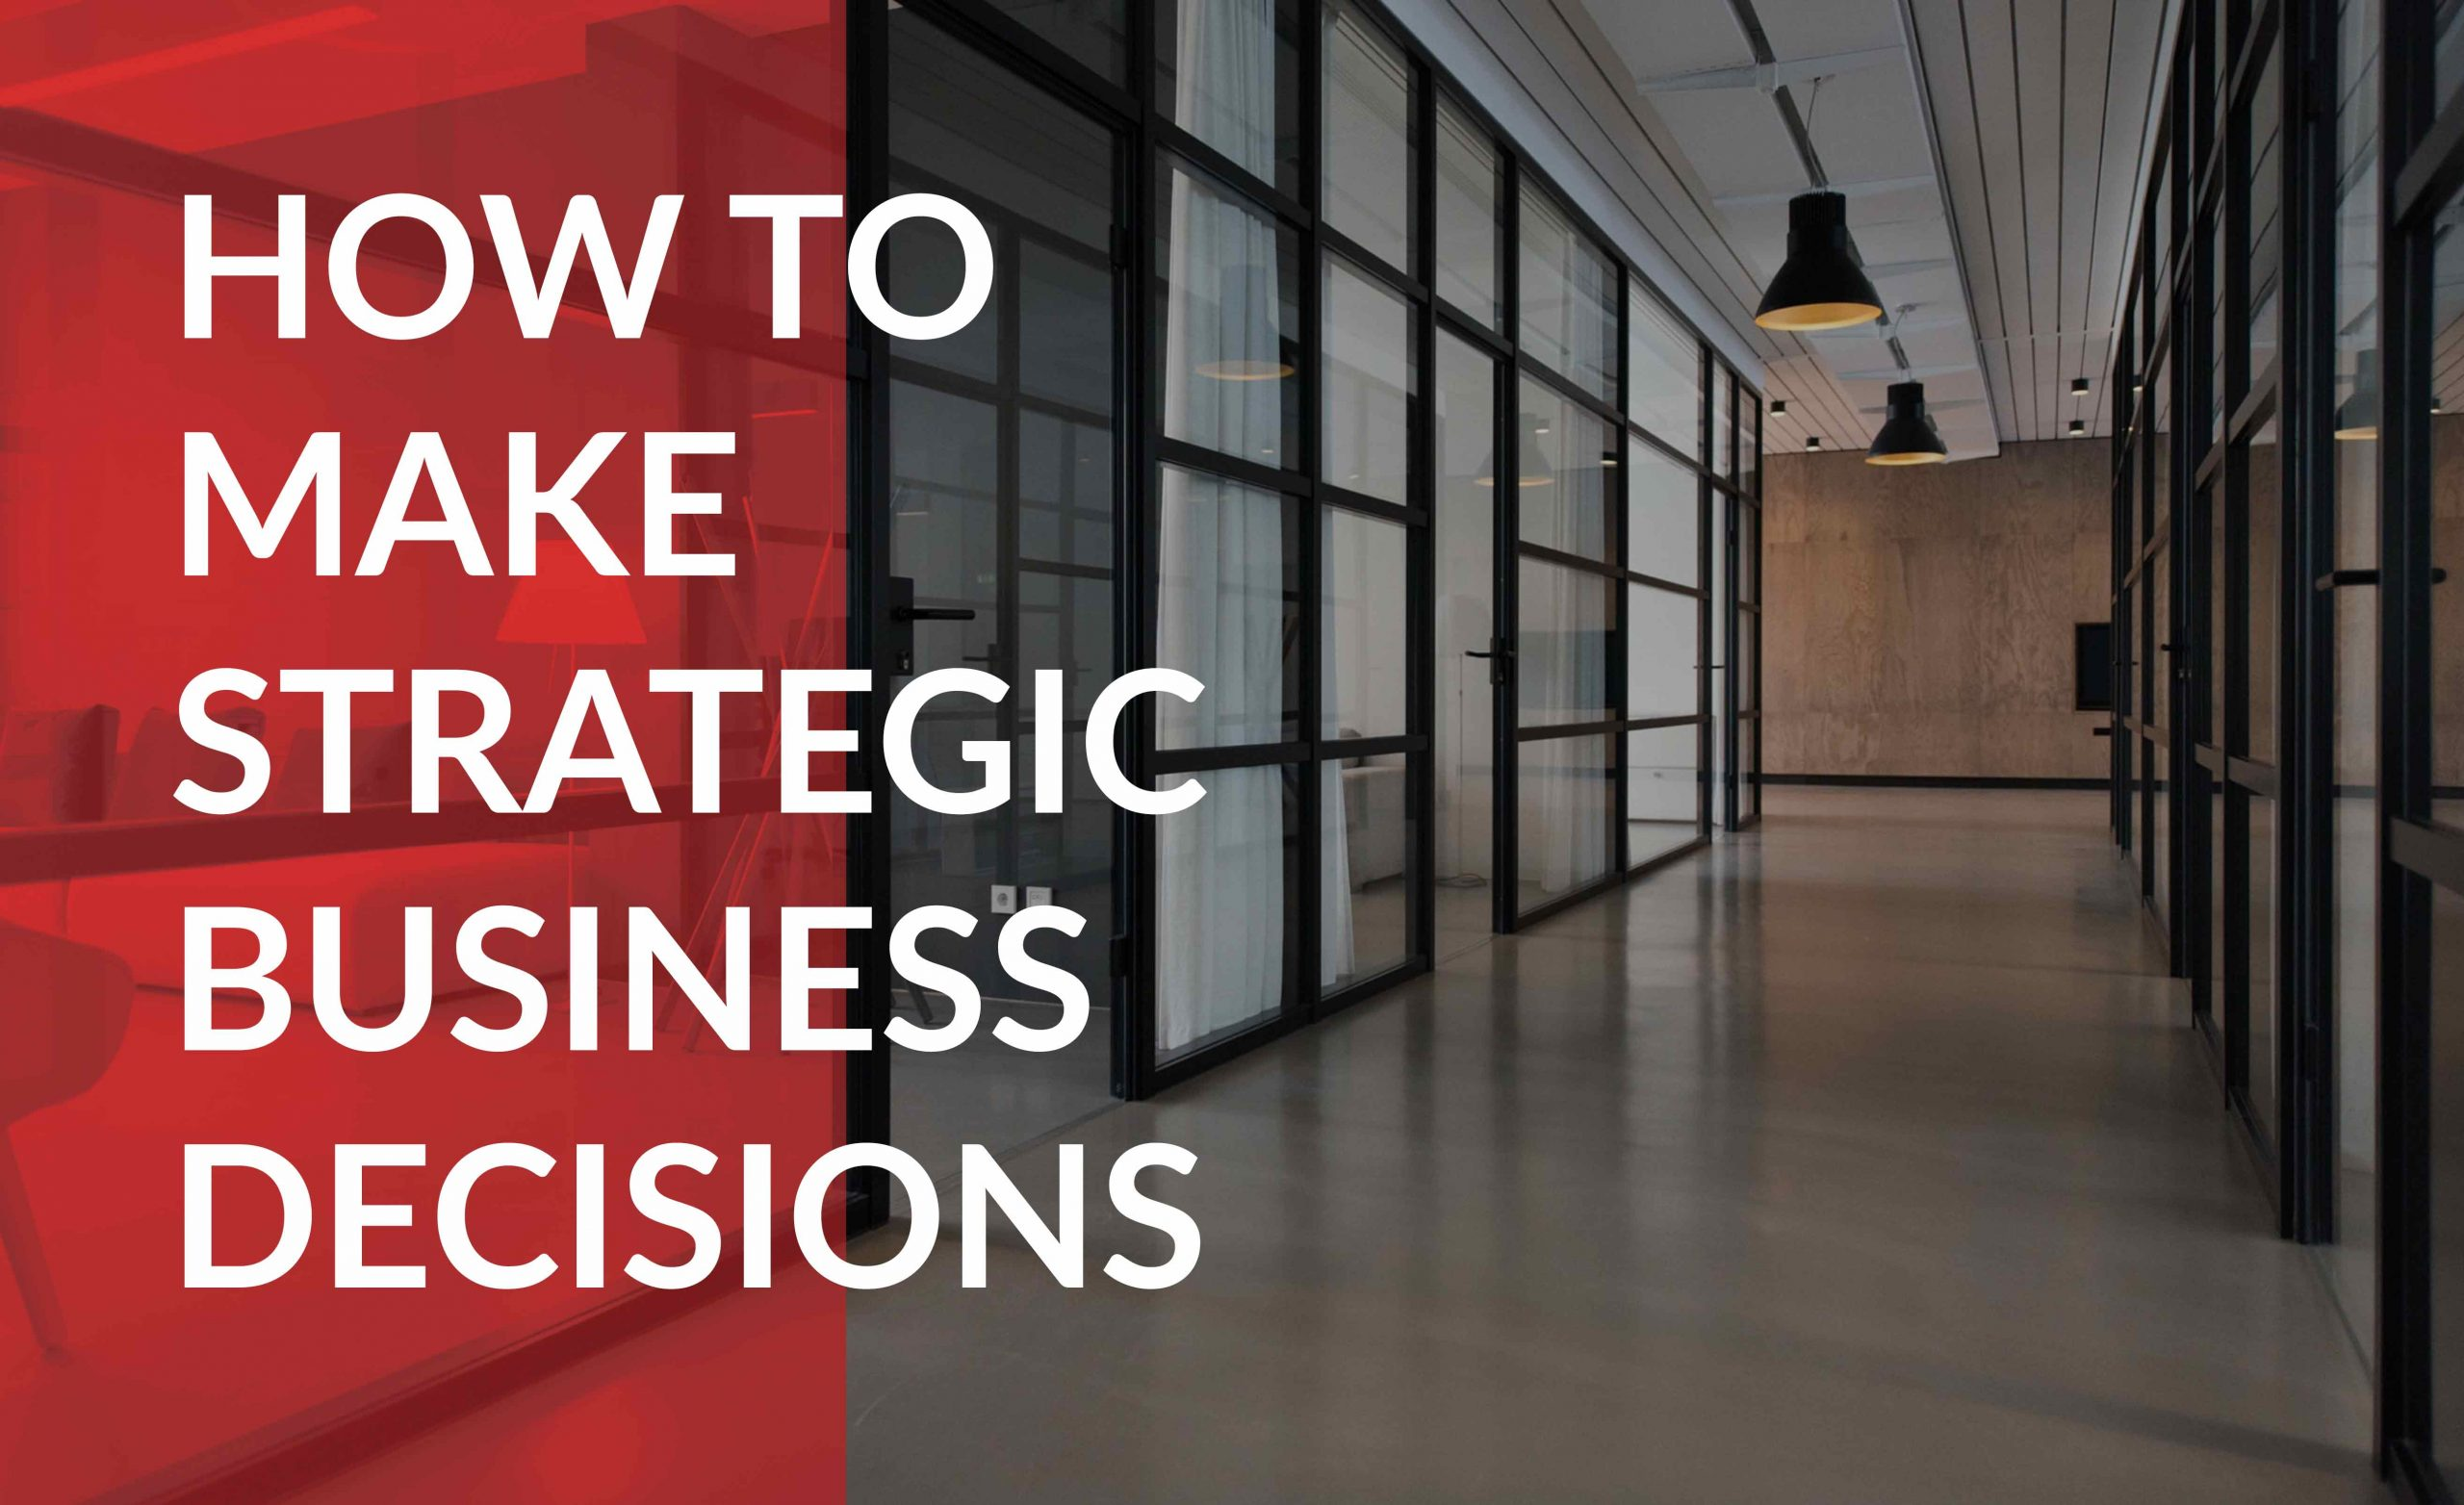 Make strategic business decisions